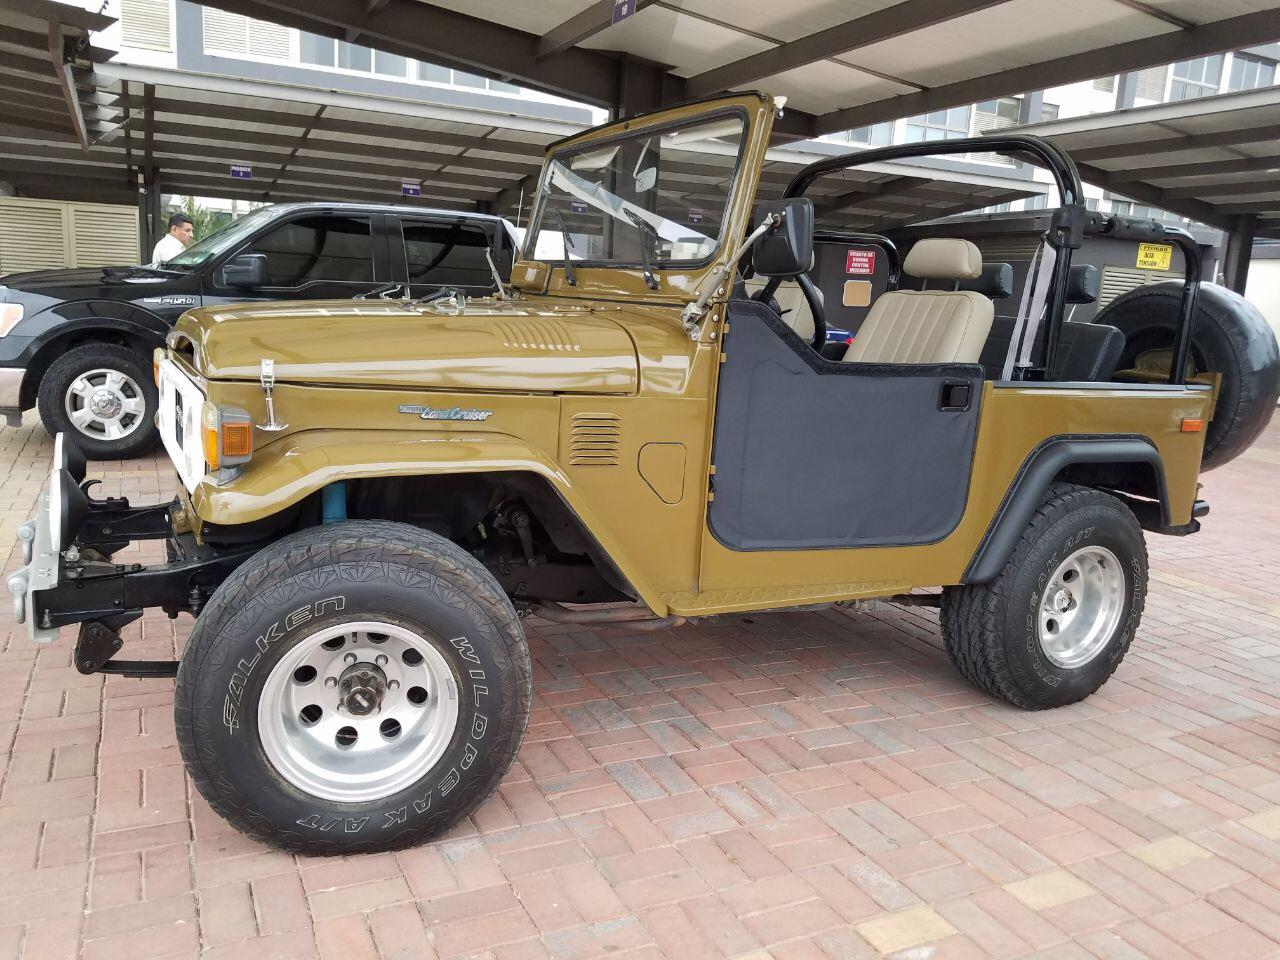 Large Picture of '80 Land Cruiser FJ located in Guayaquil Guayas - $50,000.00 Offered by a Private Seller - L8UU